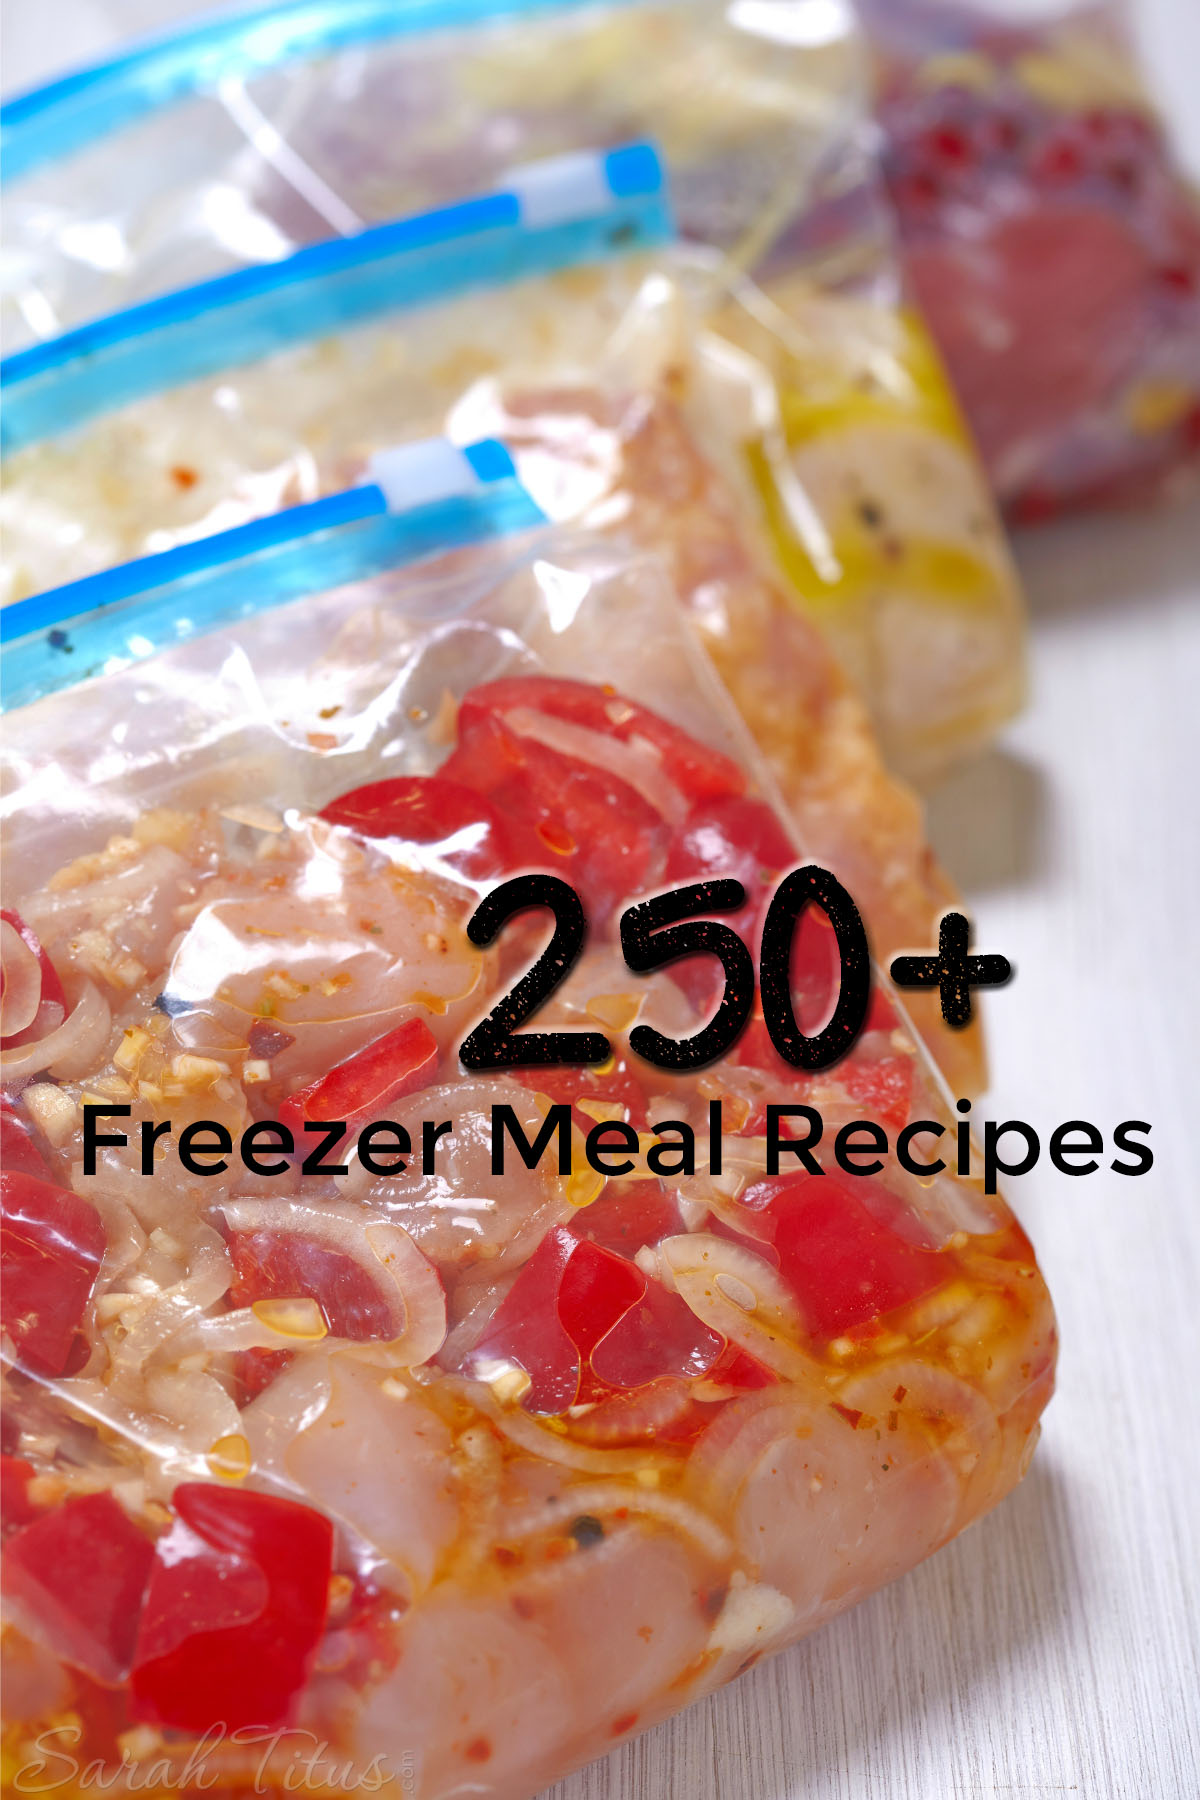 It's 5 o'clock and you are searching your fridge and pantry for something to make. With these 250+ easy freezer meal recipes, that will never happen again!